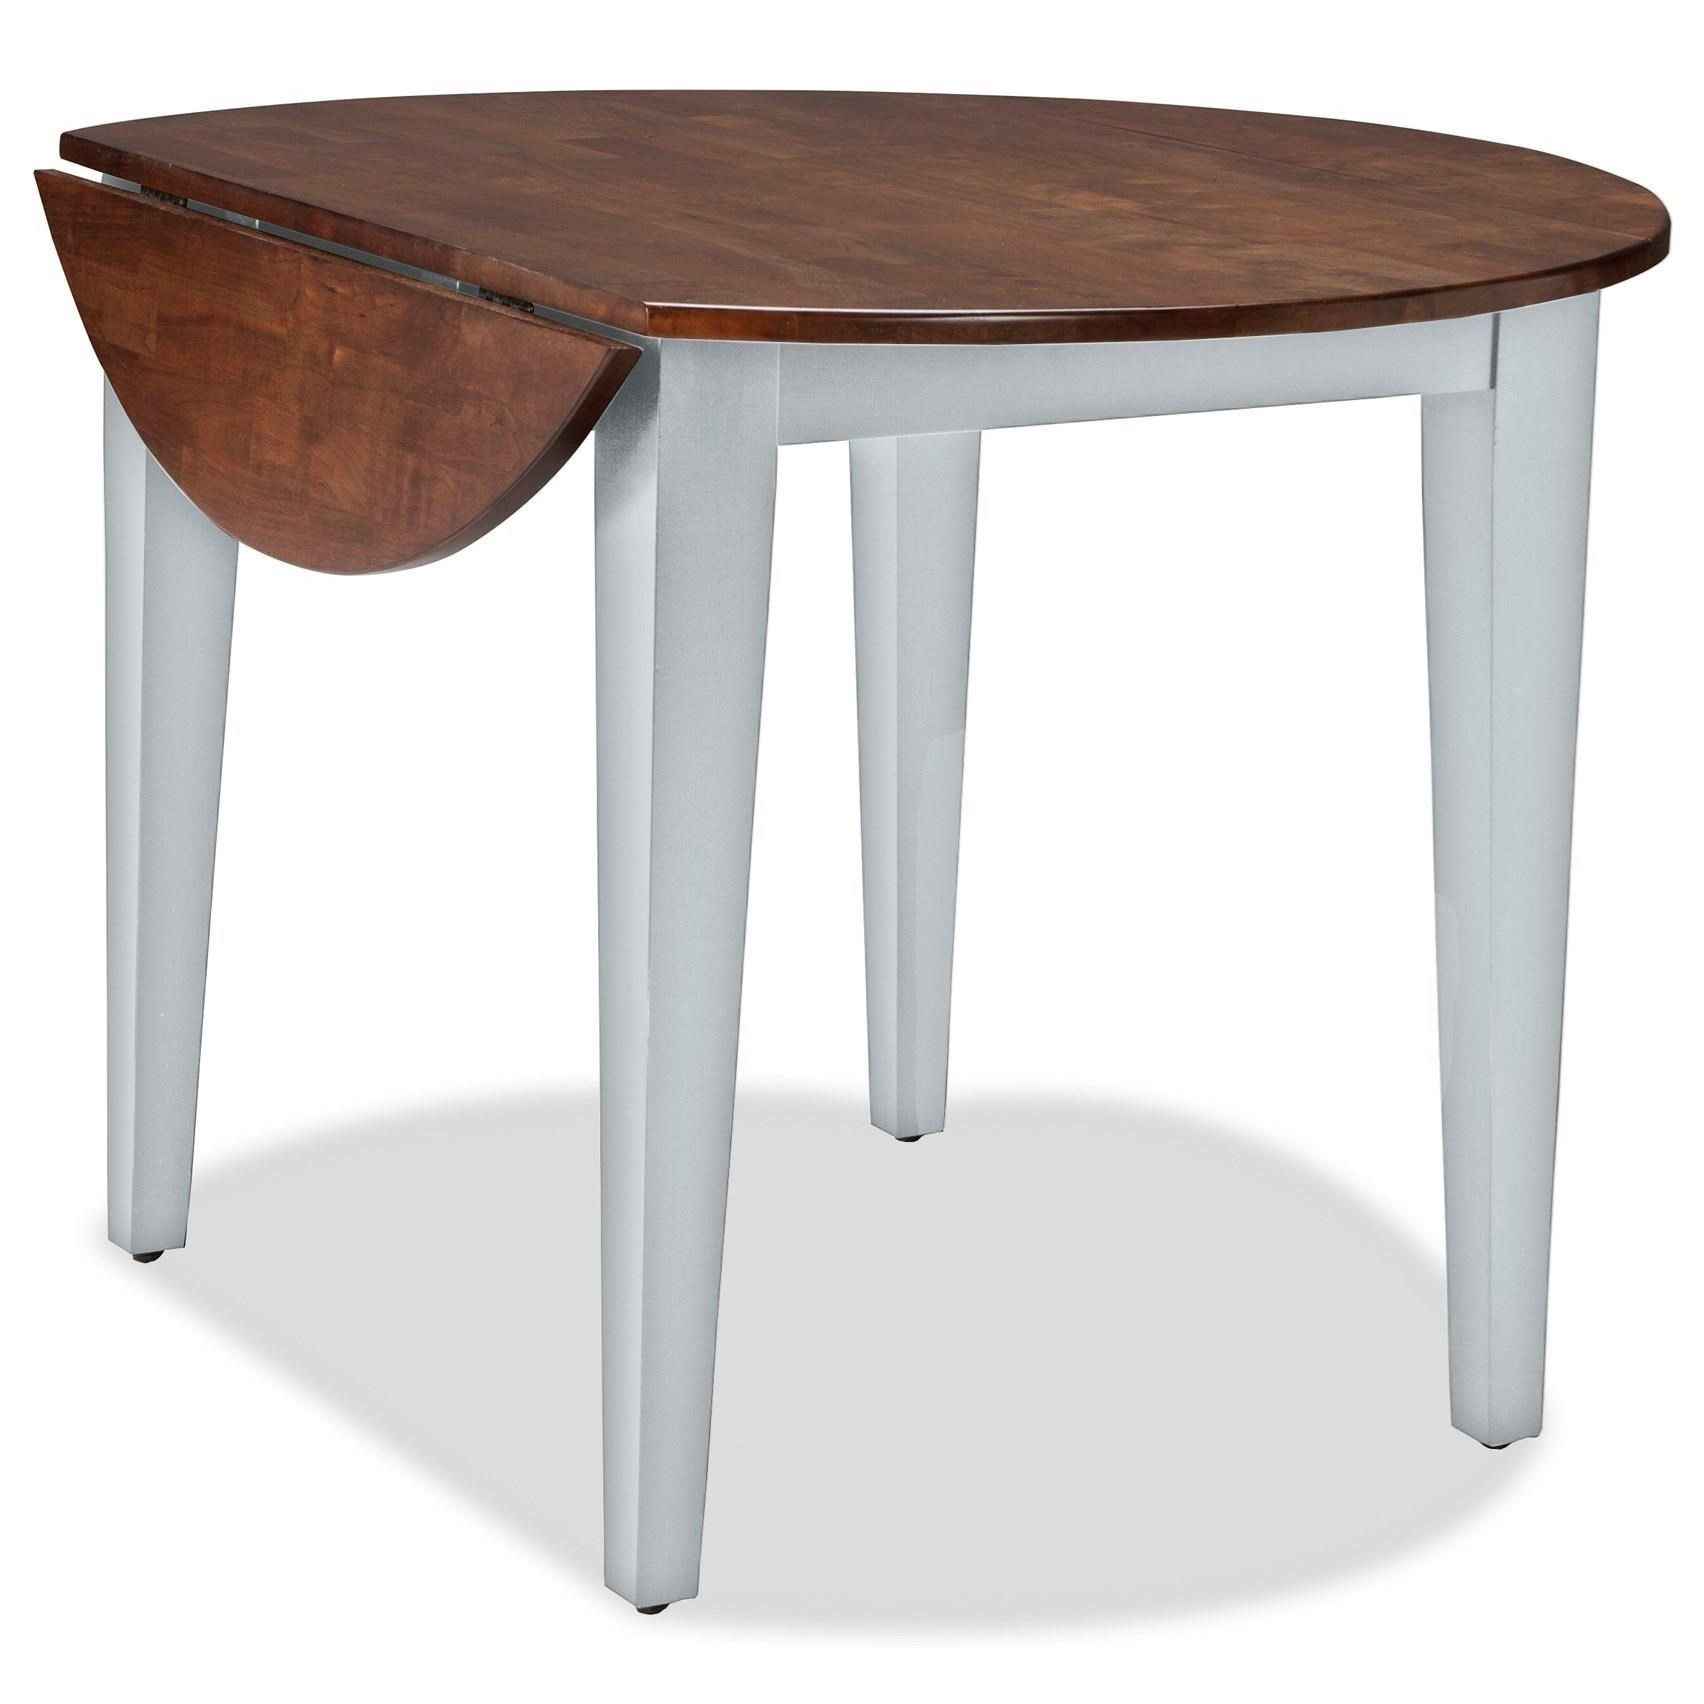 Intercon small space ss ta 42d cyg c 42 round drop leaf for Small round dining table with leaf